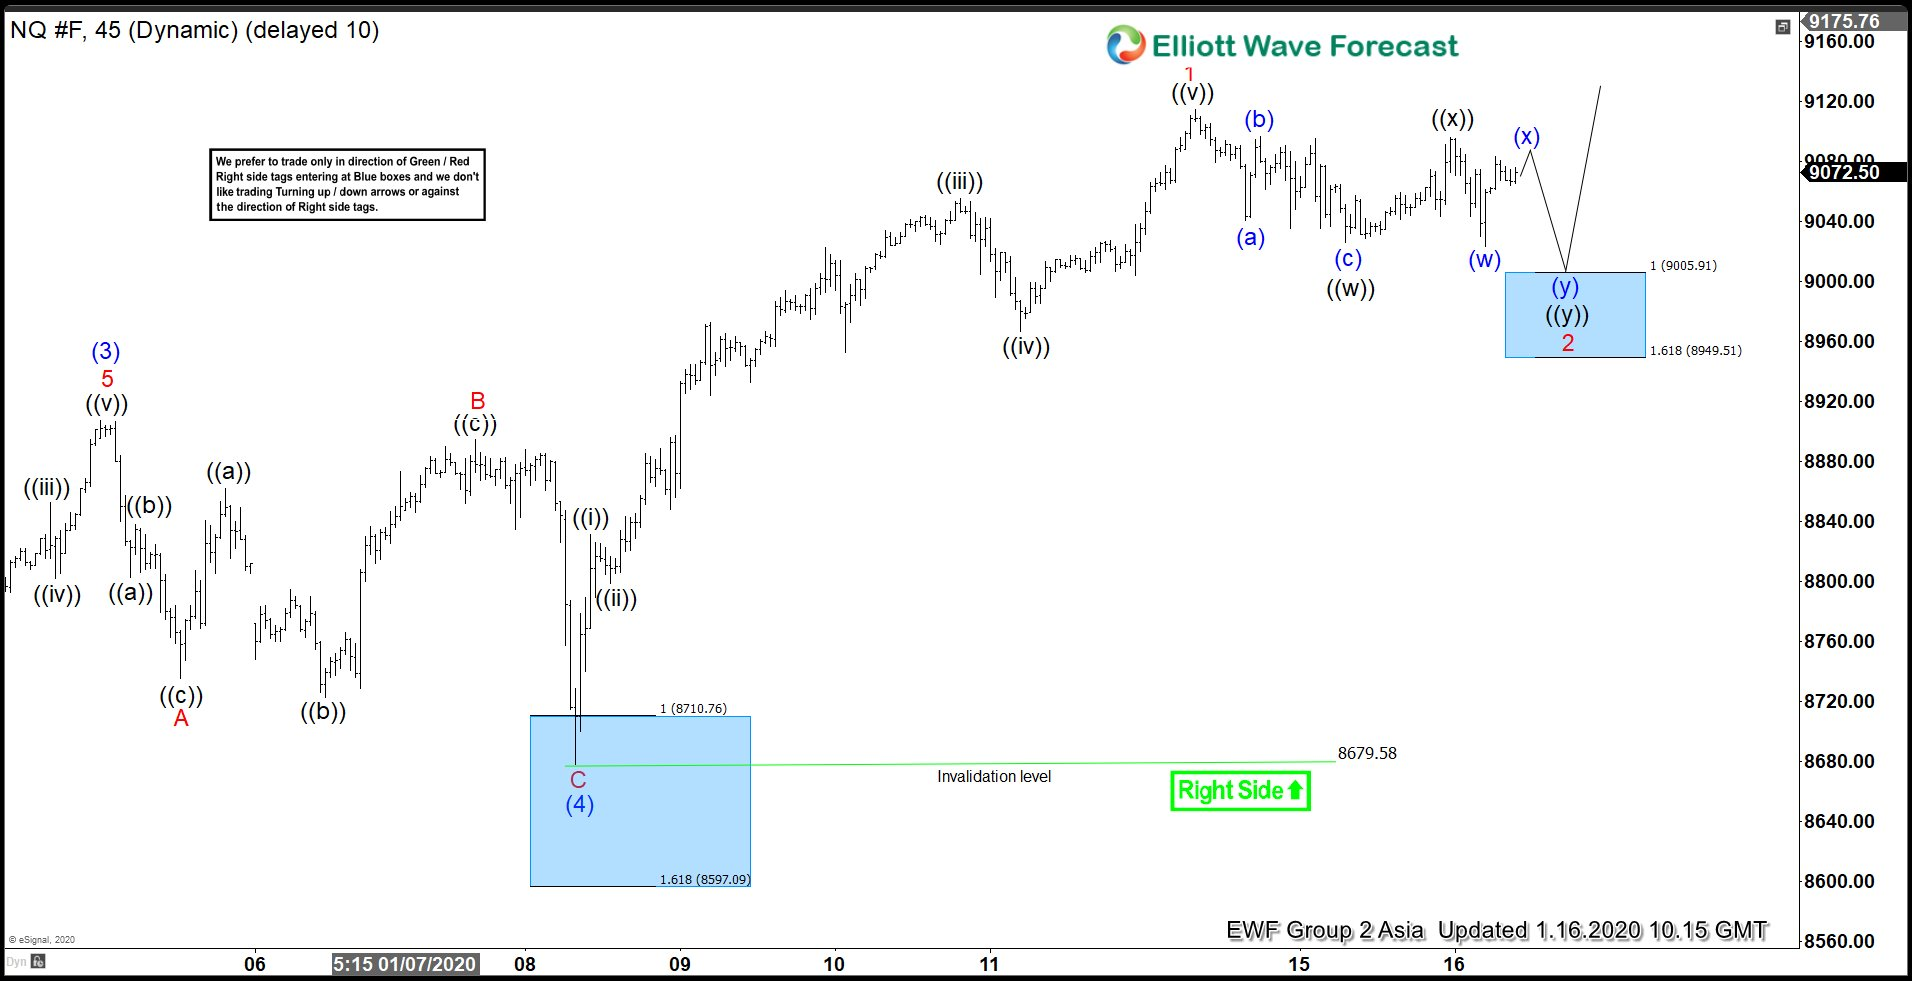 Elliott Wave View: Nasdaq Short Term Support